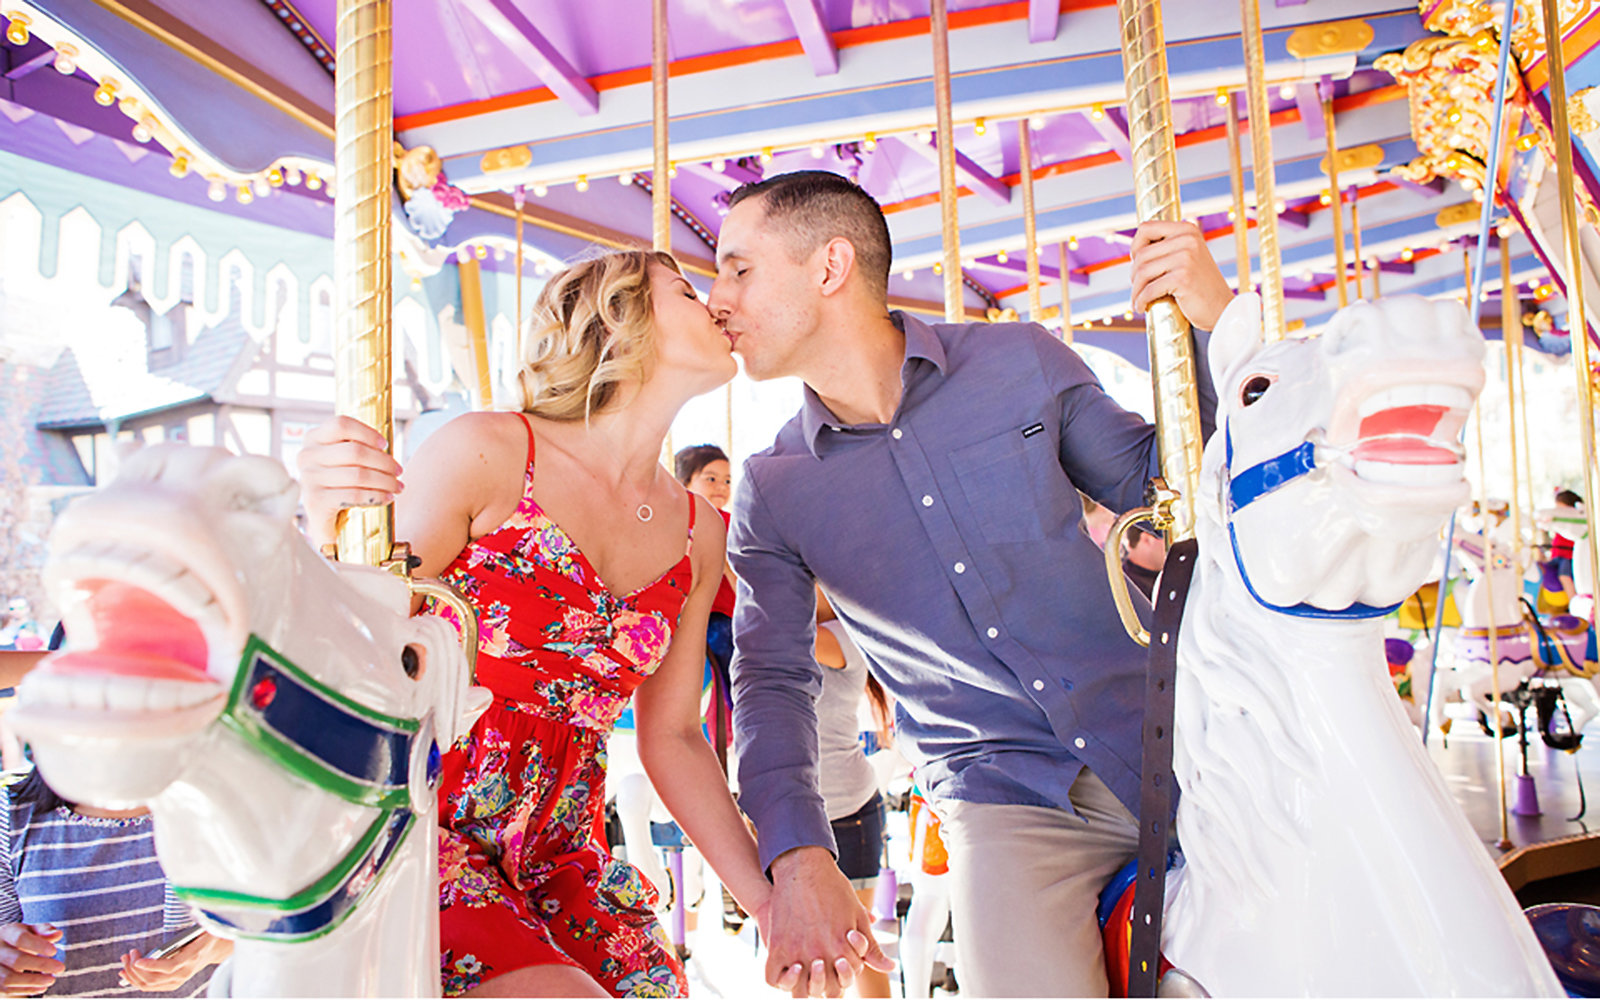 How to Pull Off a Magical Proposal at Disney